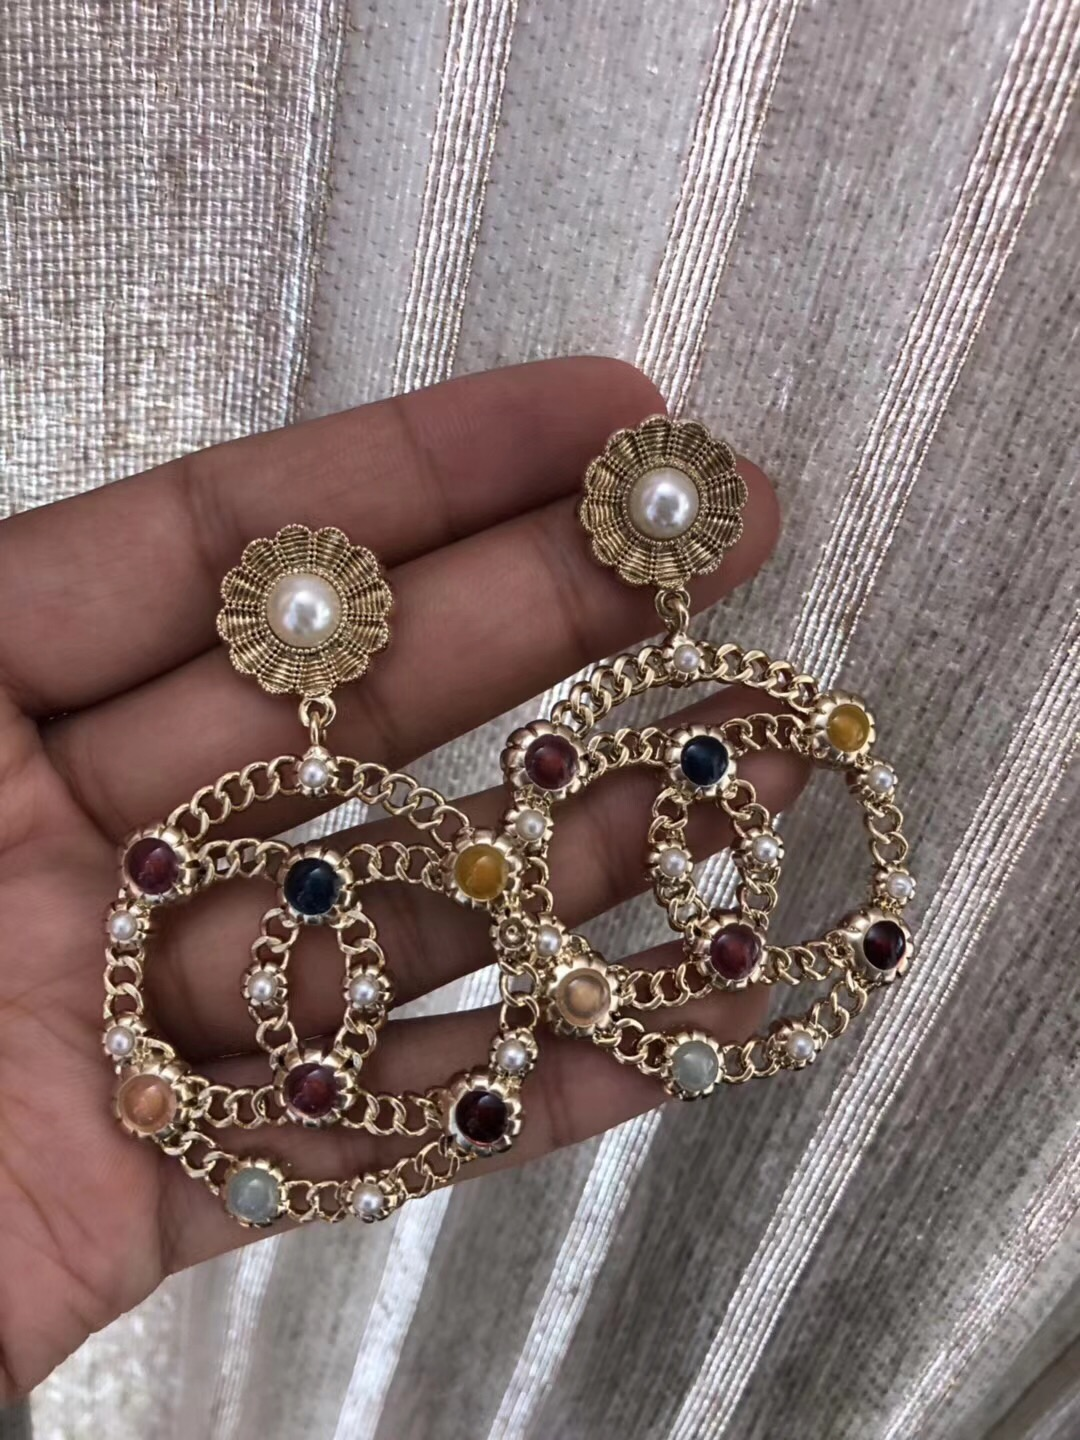 Chanel Earrings 4450